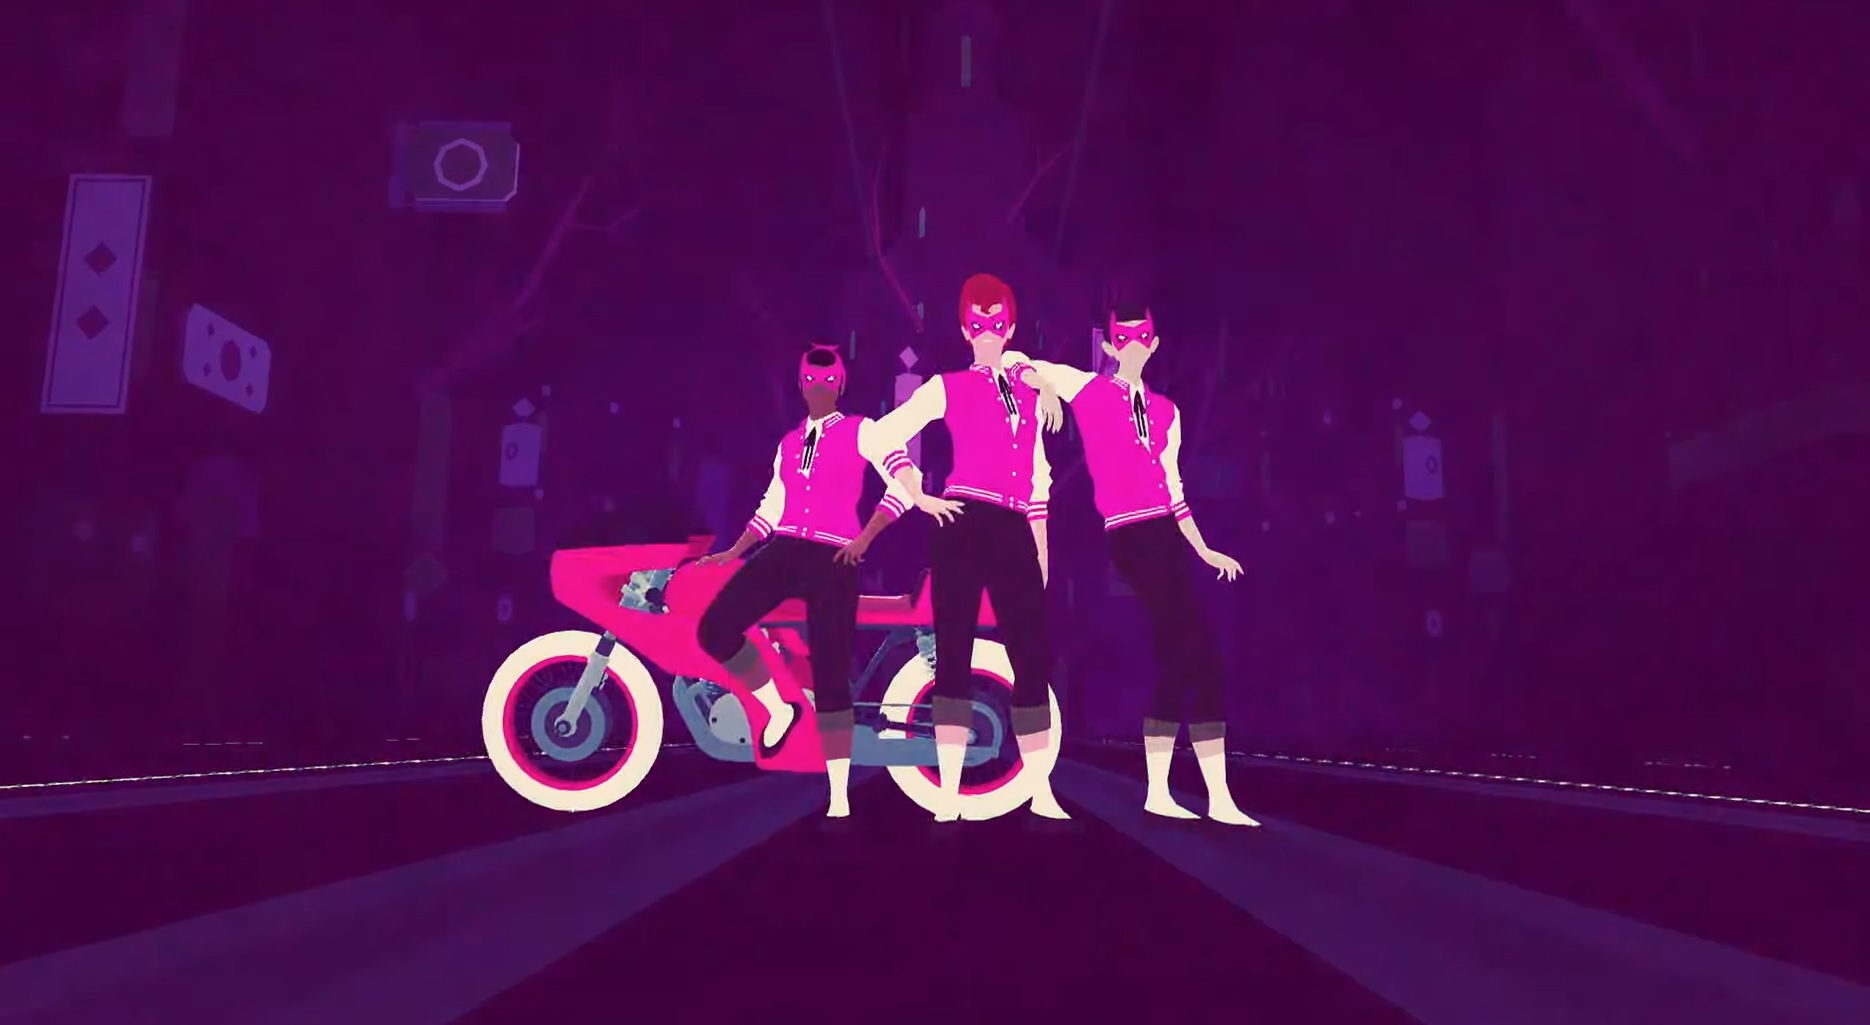 Sayonara Wild Hearts is a neon-drenched dreamscape for Switch screenshot